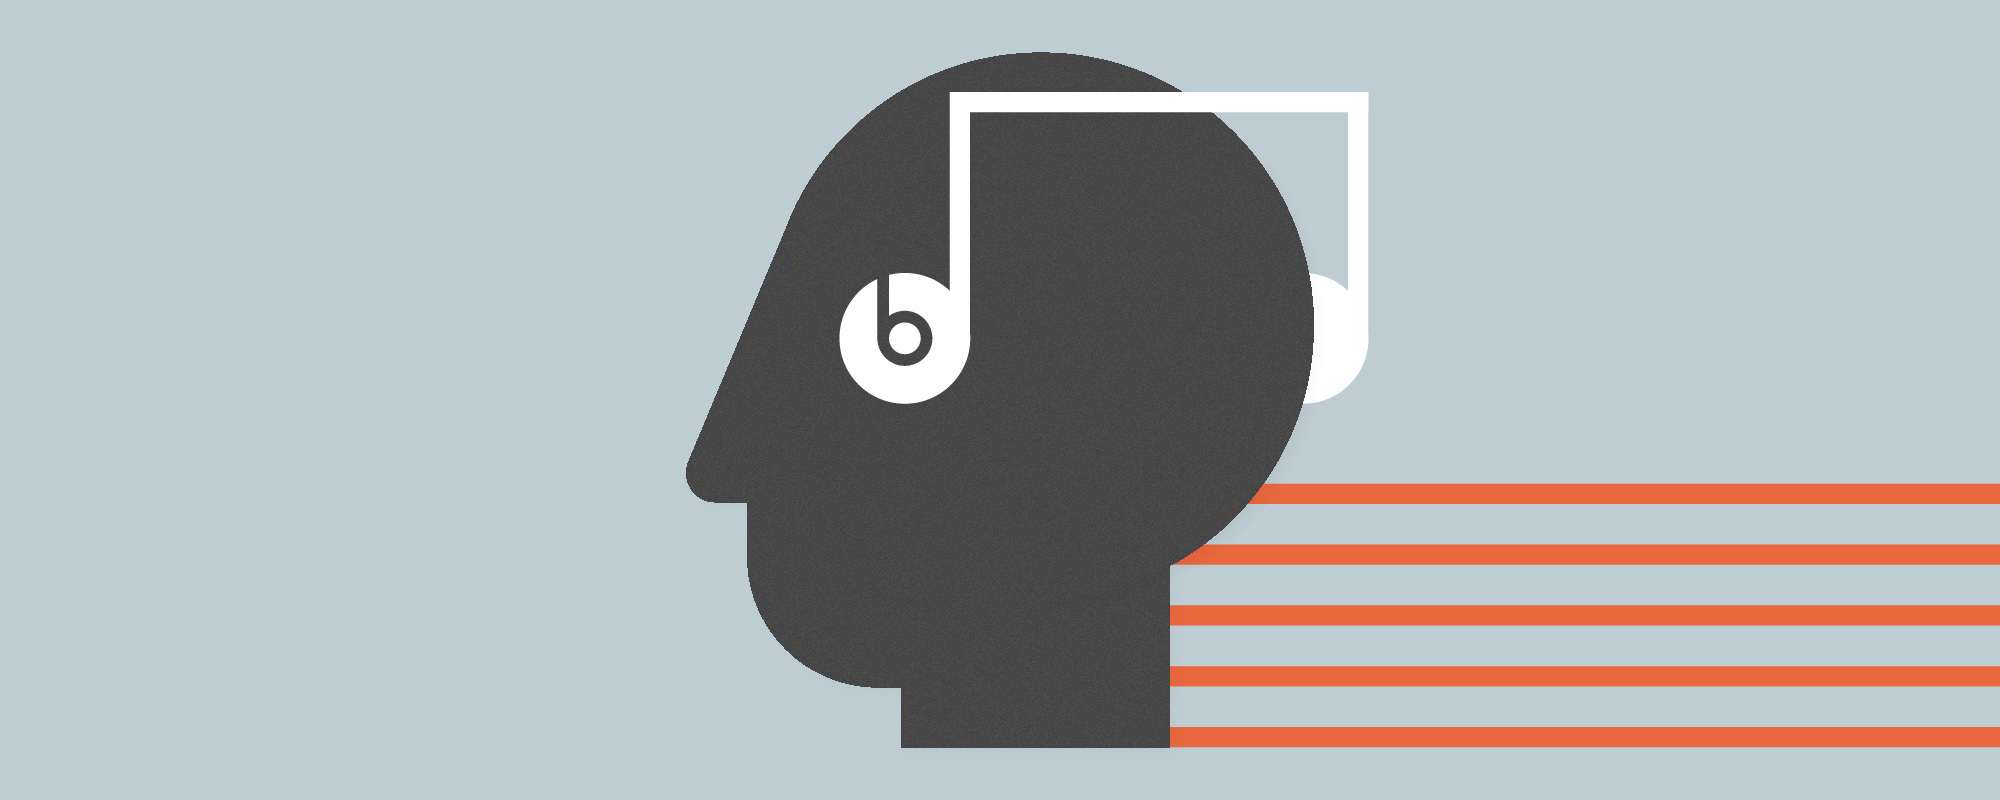 research paper on music and the brain Academiaedu is a platform for academics to share research  mozart effect: a class study on the effects of music  a class study on the effects of music on.